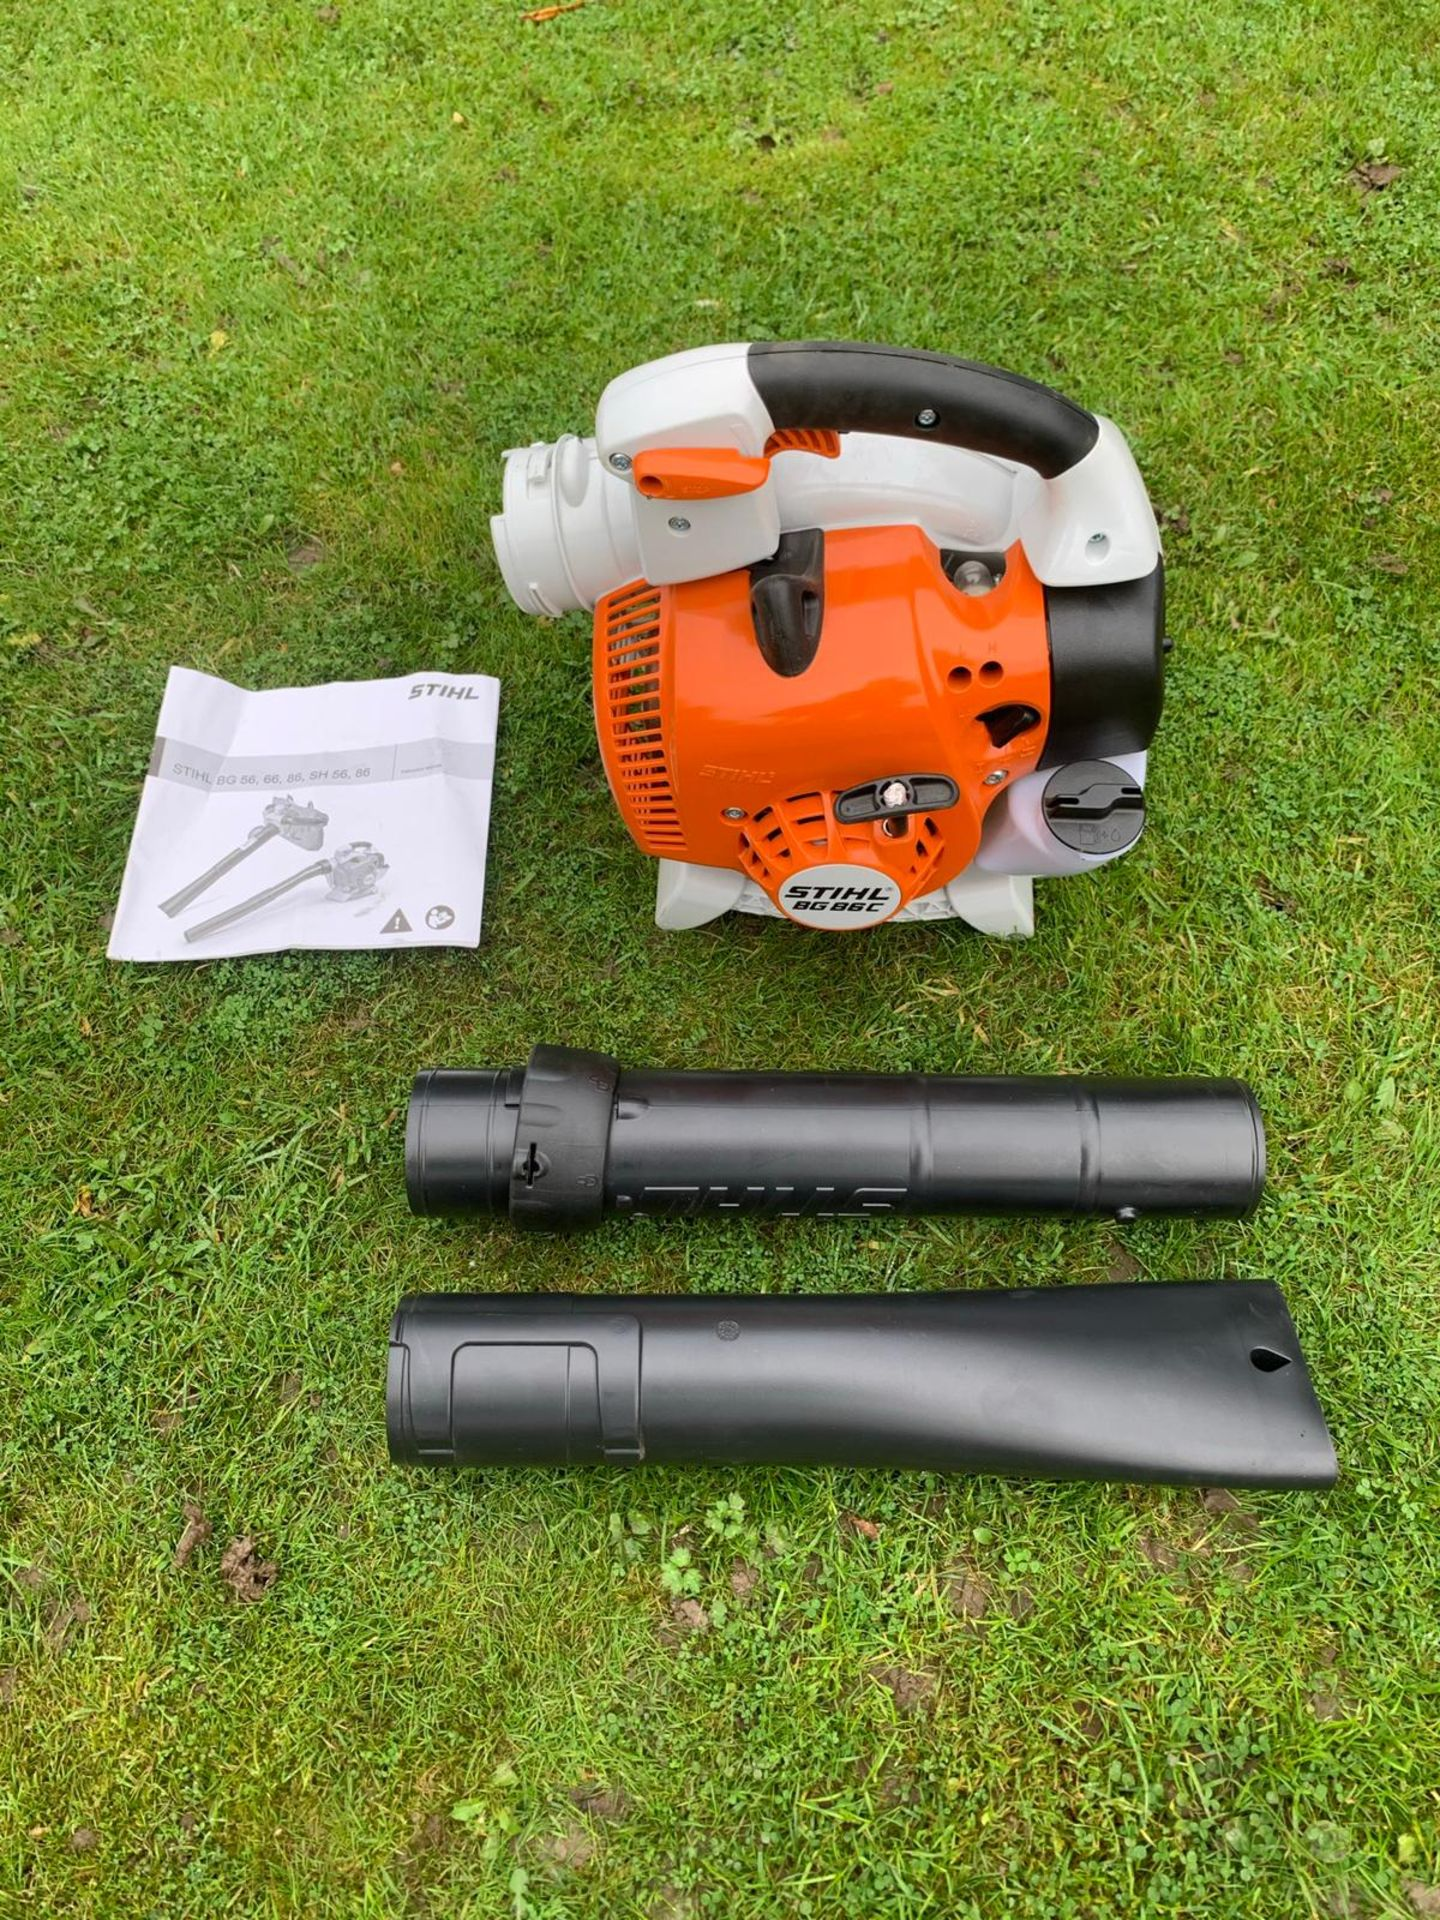 BRAND NEW AND UNUSED STIHL BG86C-3 LEAF BLOWER, C/W MANUAL AND PIPES (BOXED) *NO VAT* - Image 2 of 3